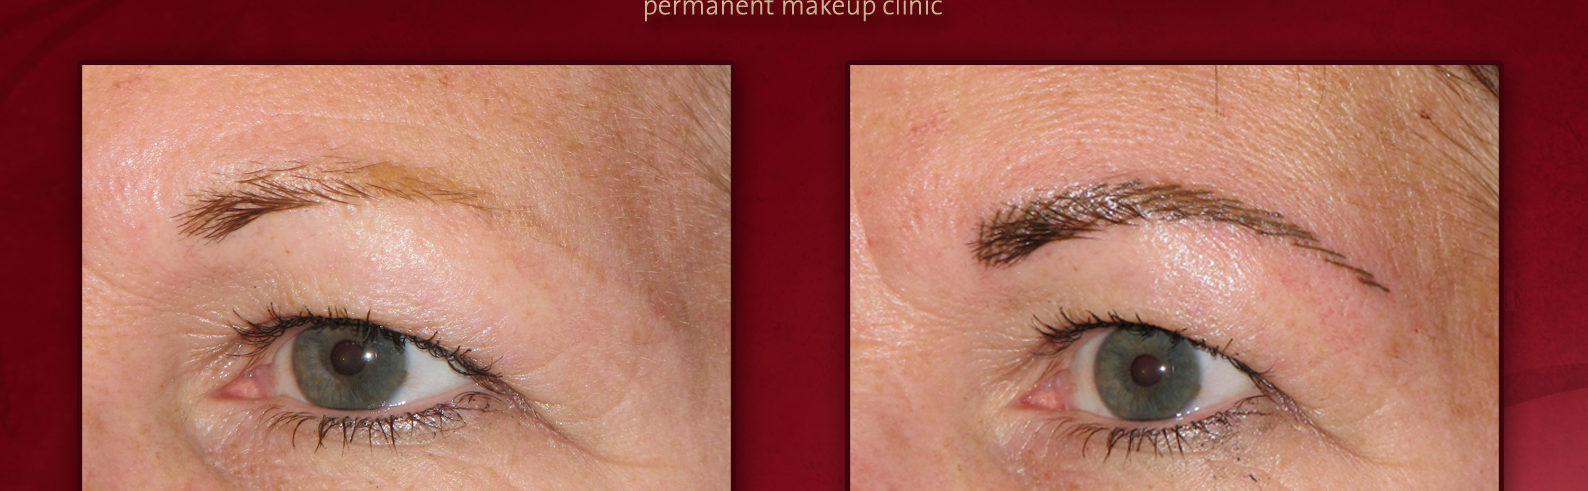 permanent eyebrows, microblading, eyebrow tattoo, FeatherStroke eyebrows